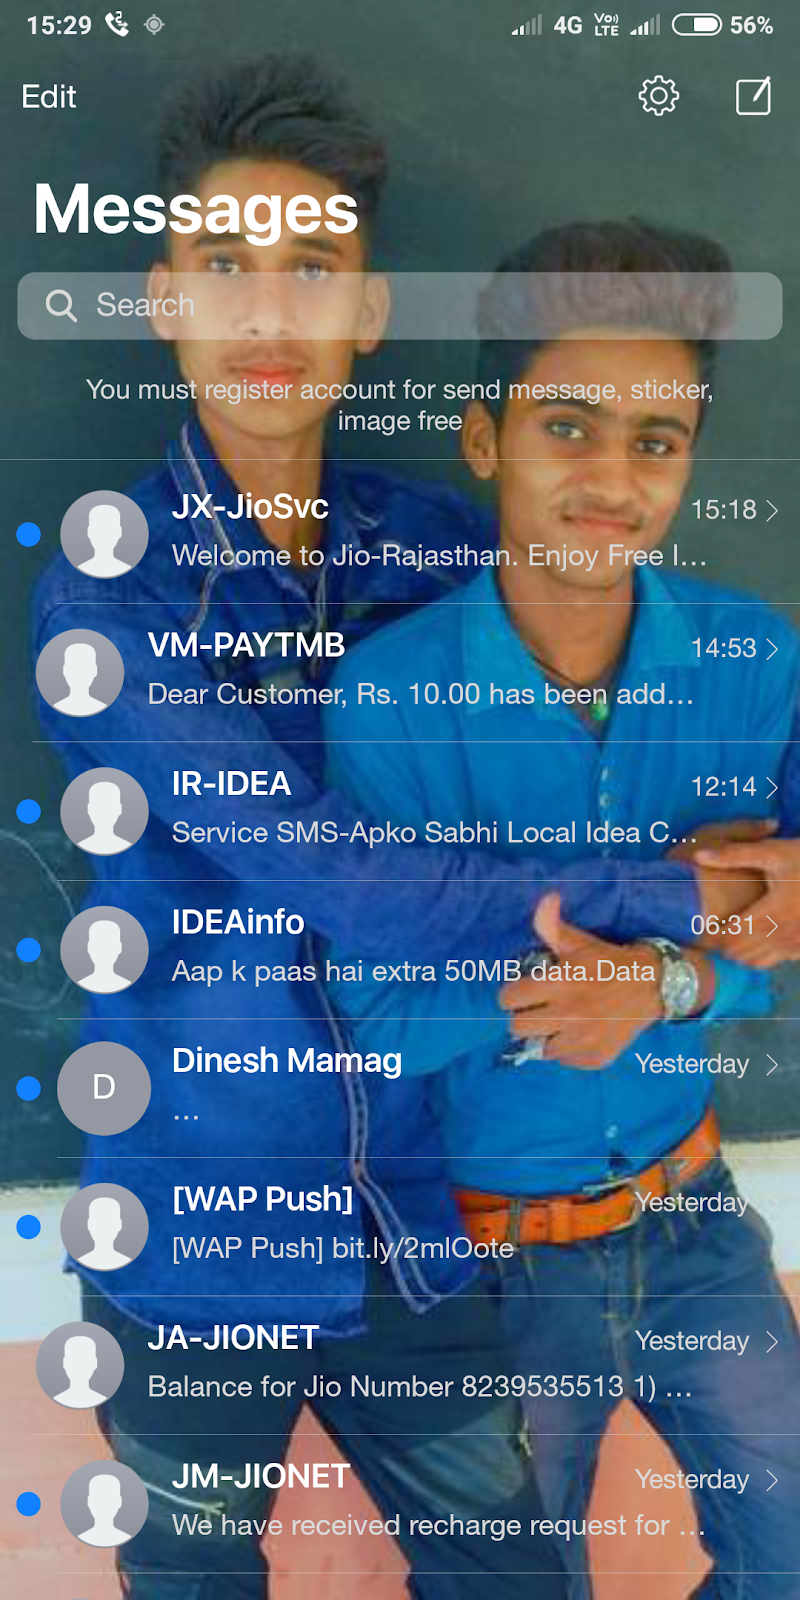 How to set your photo in message app background  - Rk